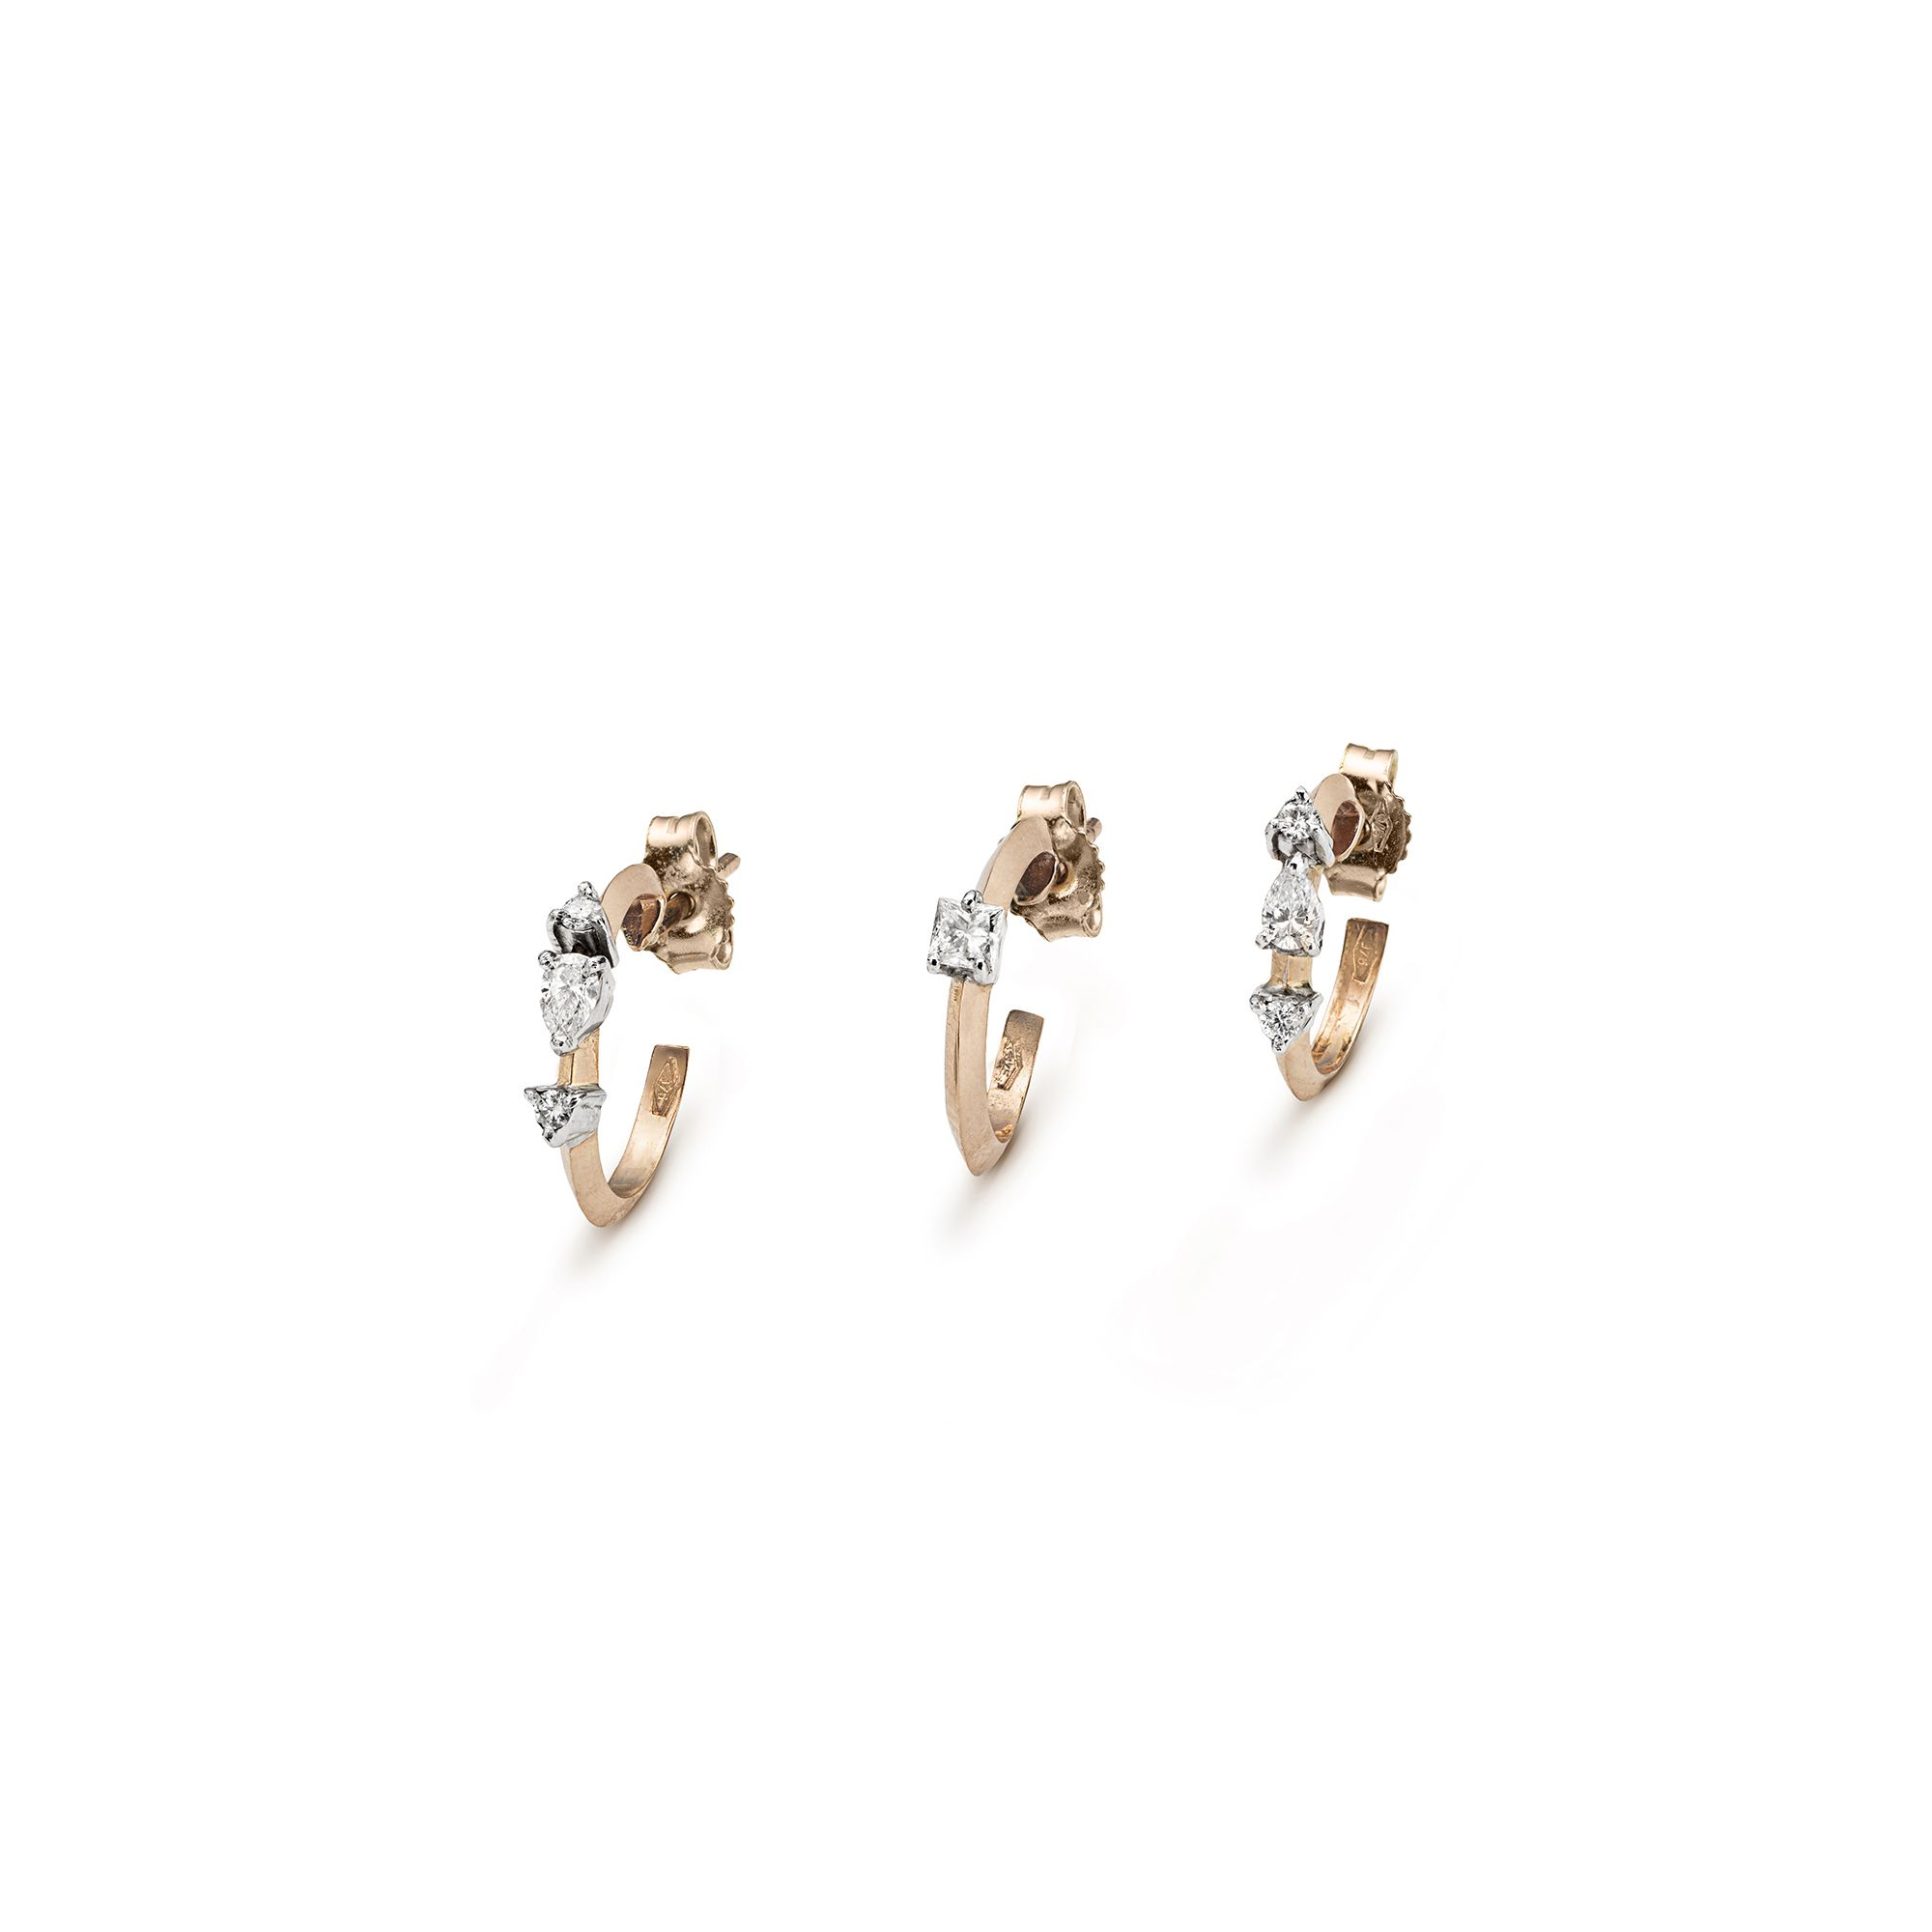 'Balance' set with diamonds Three rose gold hoop earrings with diamonds